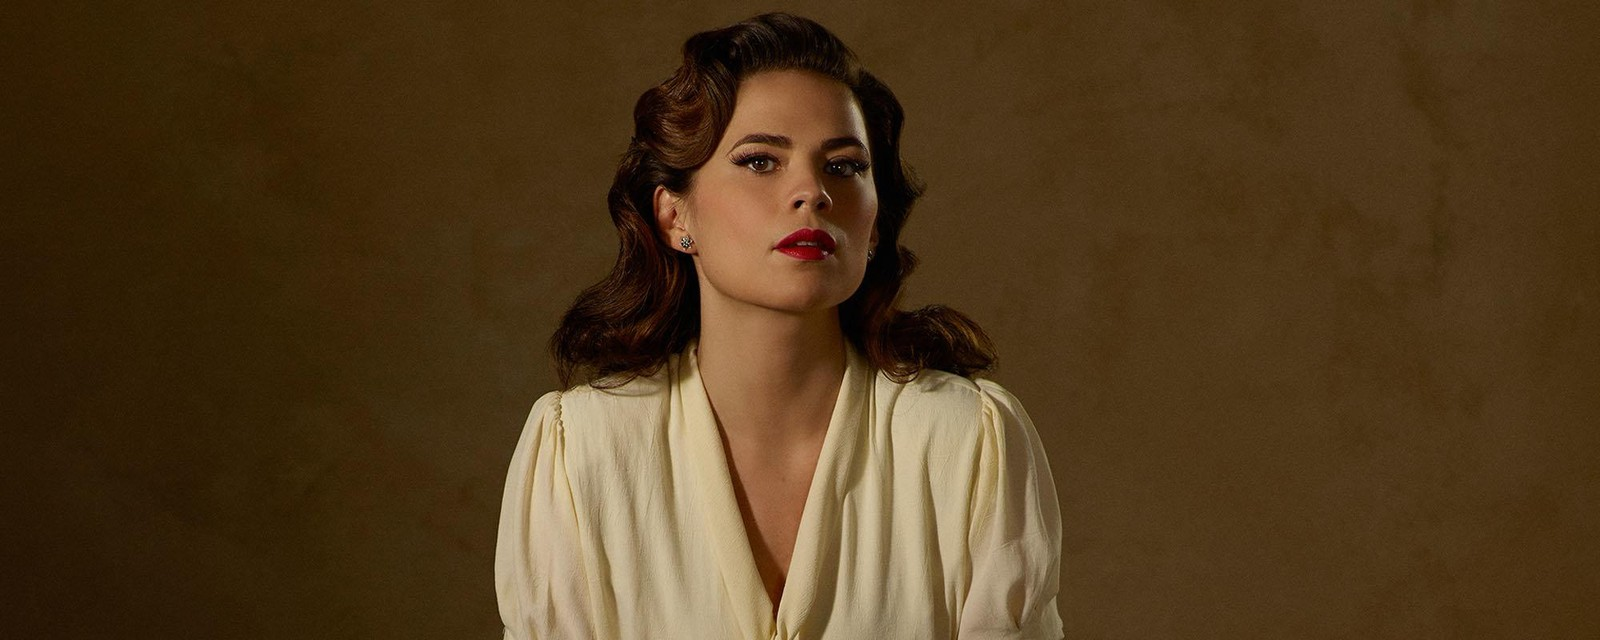 HQ Agent Carter Wallpapers | File 155.11Kb